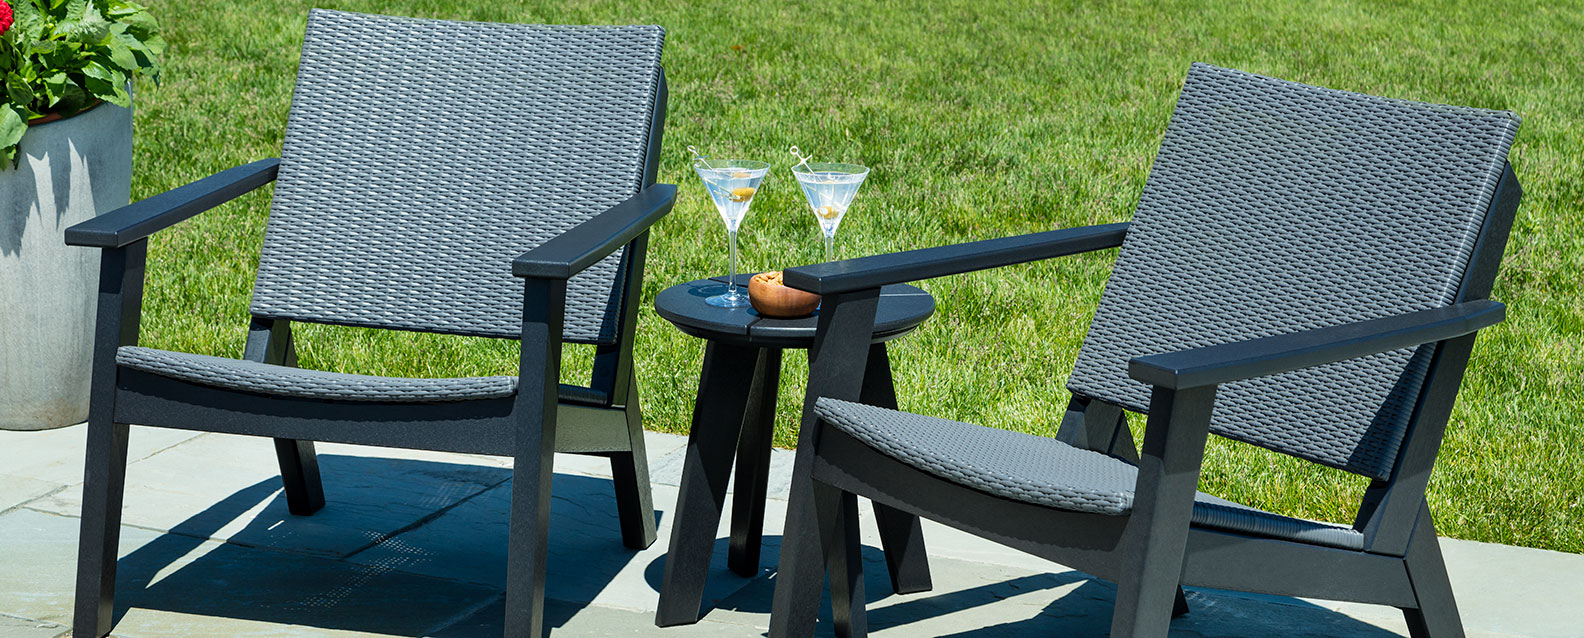 seaside chat Coventry, ri - seaside casual's mad chat chair received the international casual furnishings association's design excellence award for outstanding product design in the lounge seating.